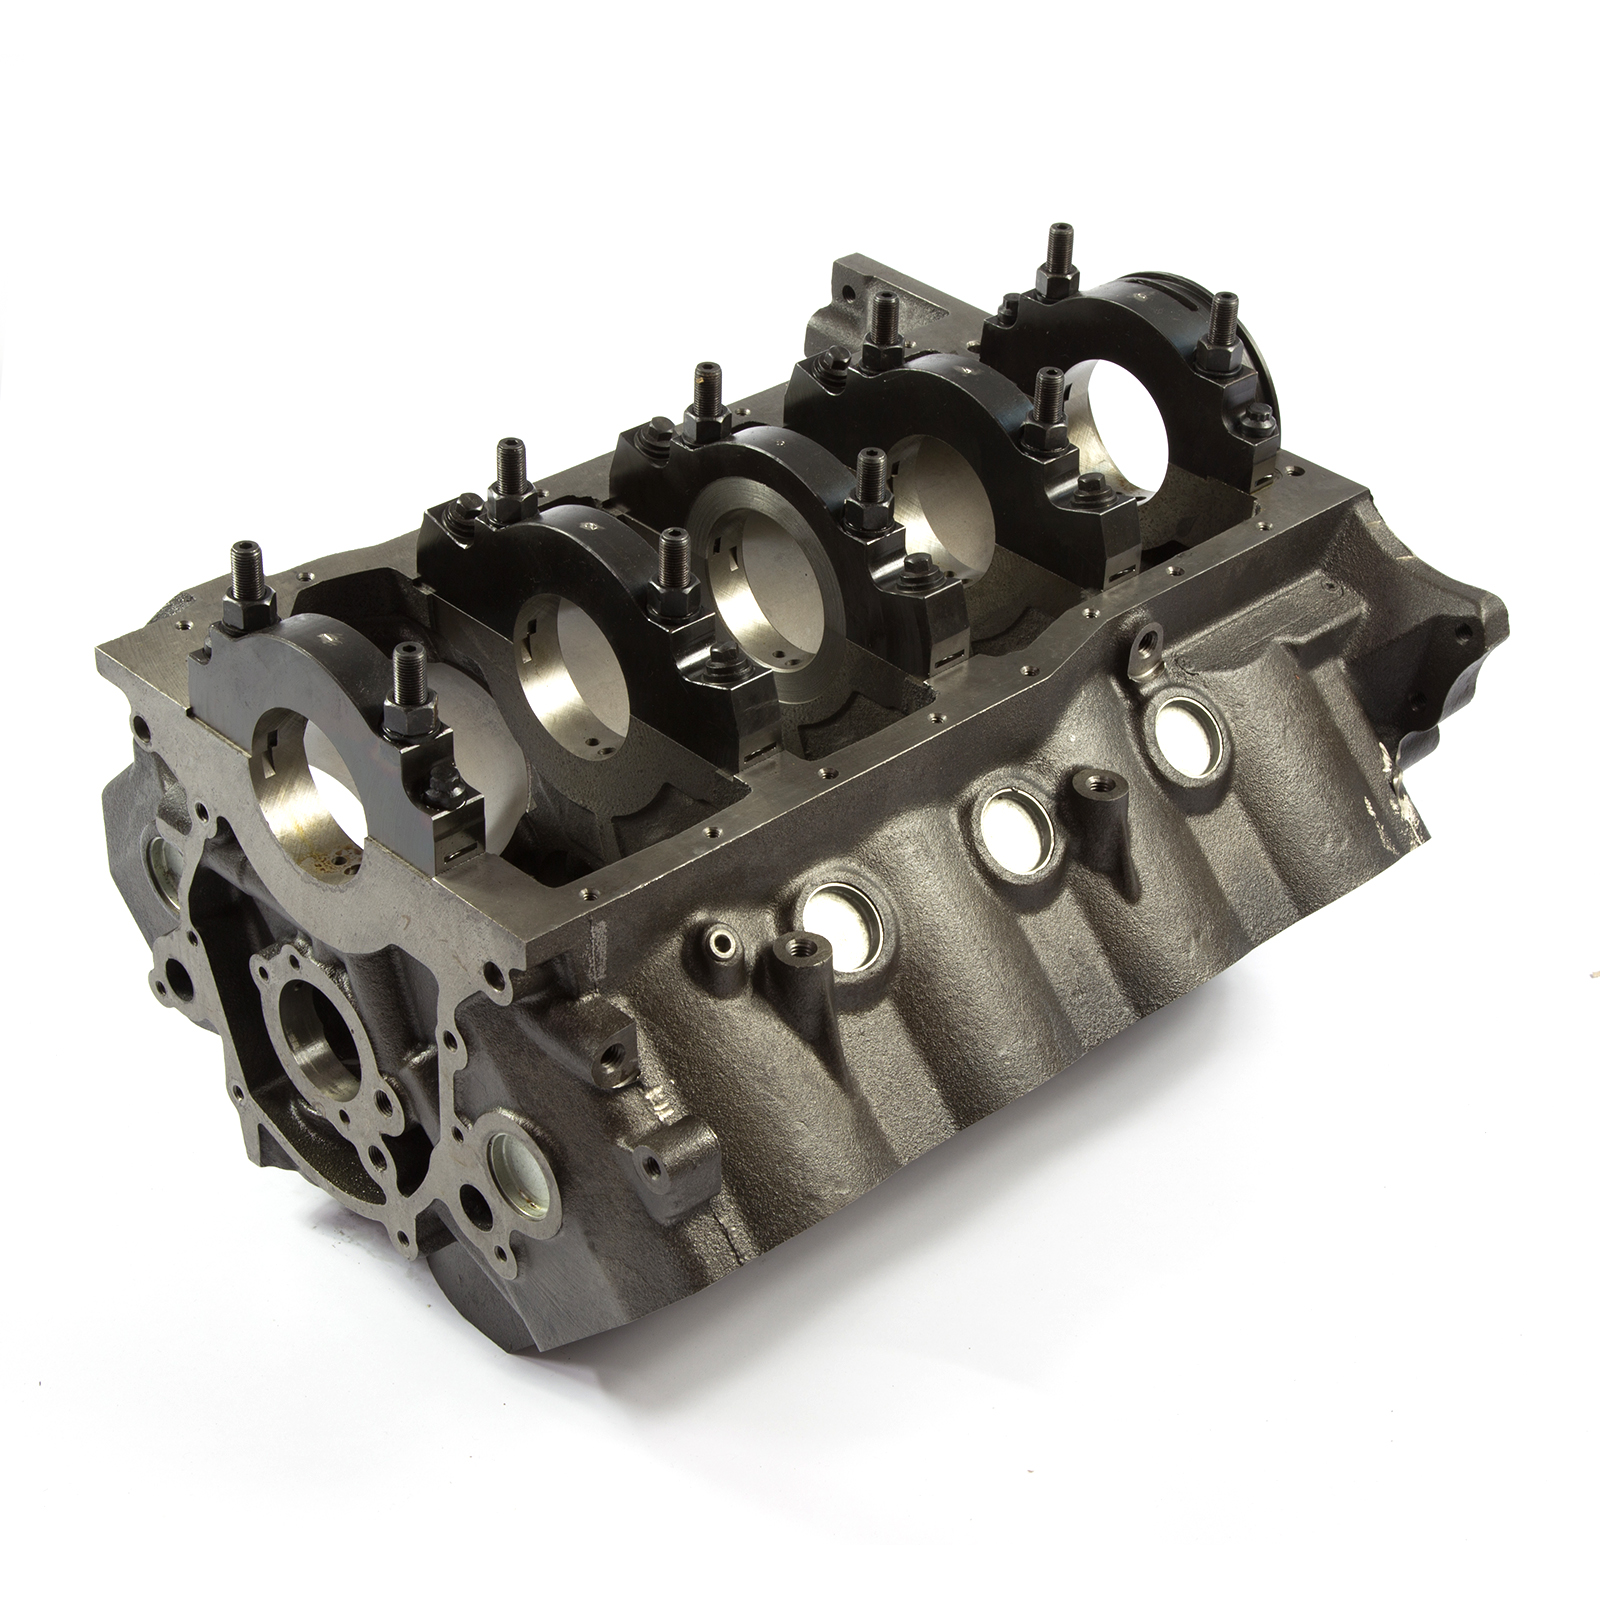 Ford 351W Windsor B-4.125 M-2.75 DH-9.5 Billet Main Iron Engine Block USA Machined